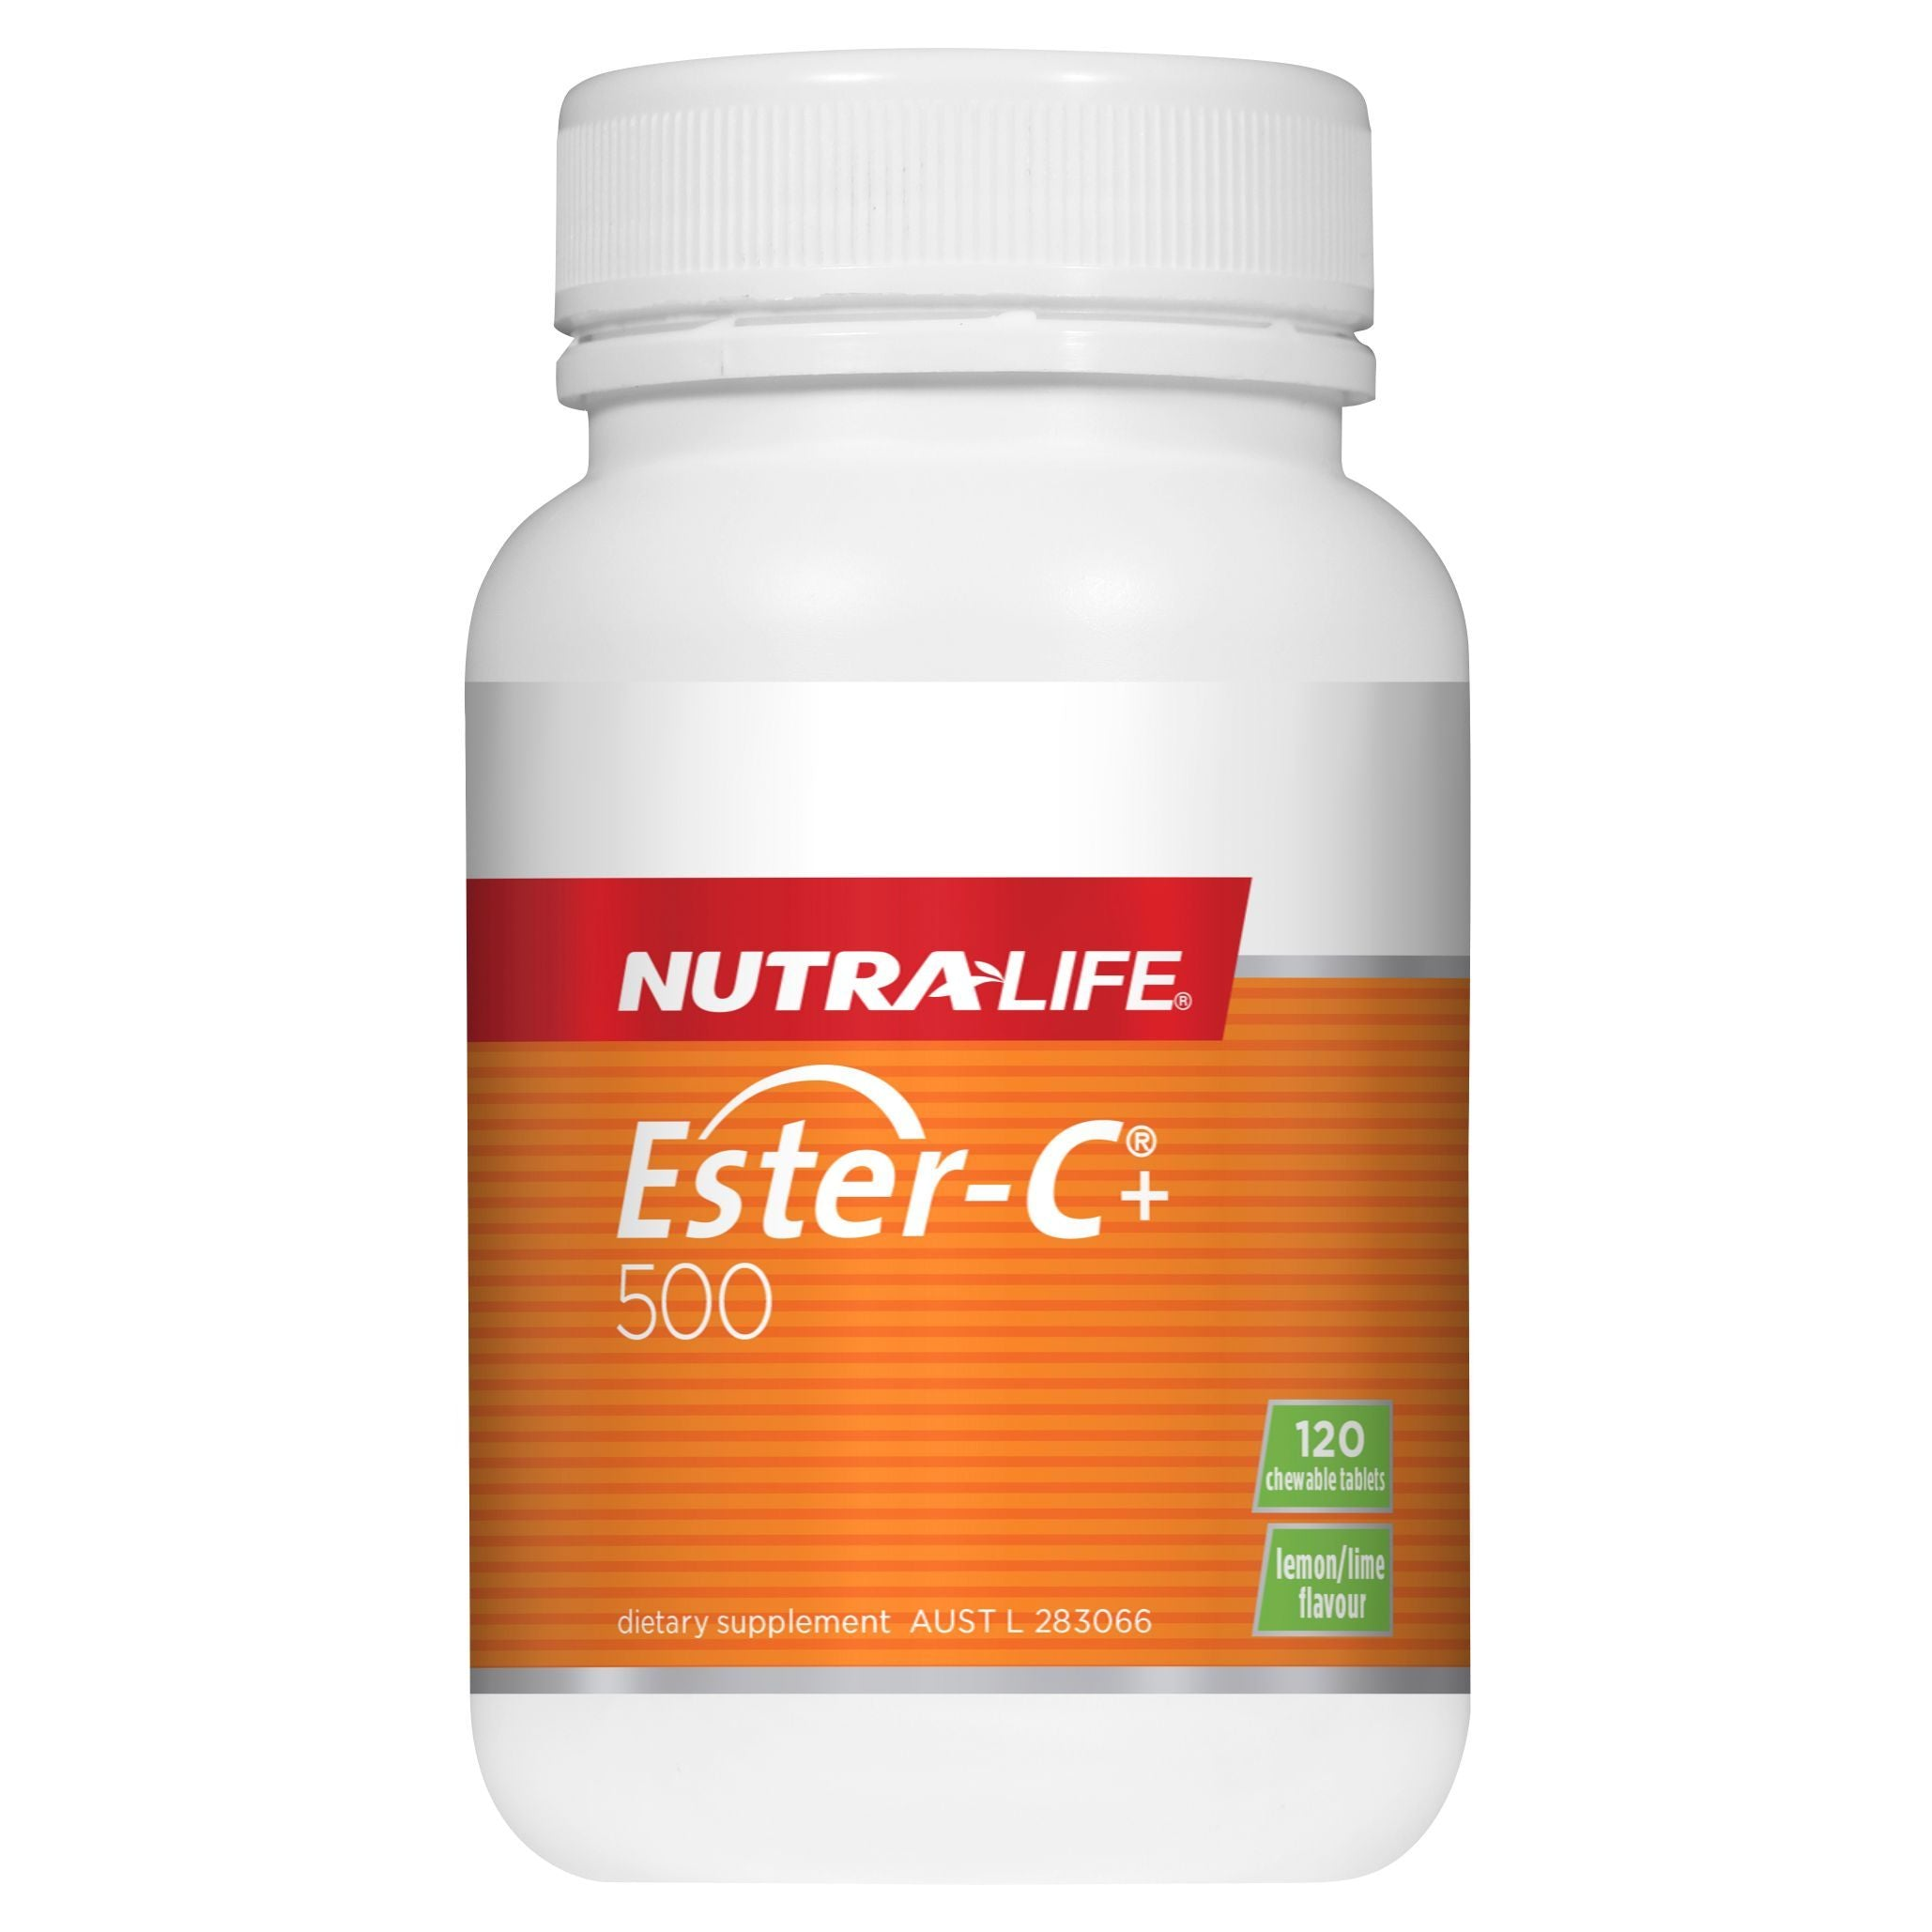 NUTRA-LIFE ESTER-C +500 120 CHEW TABS